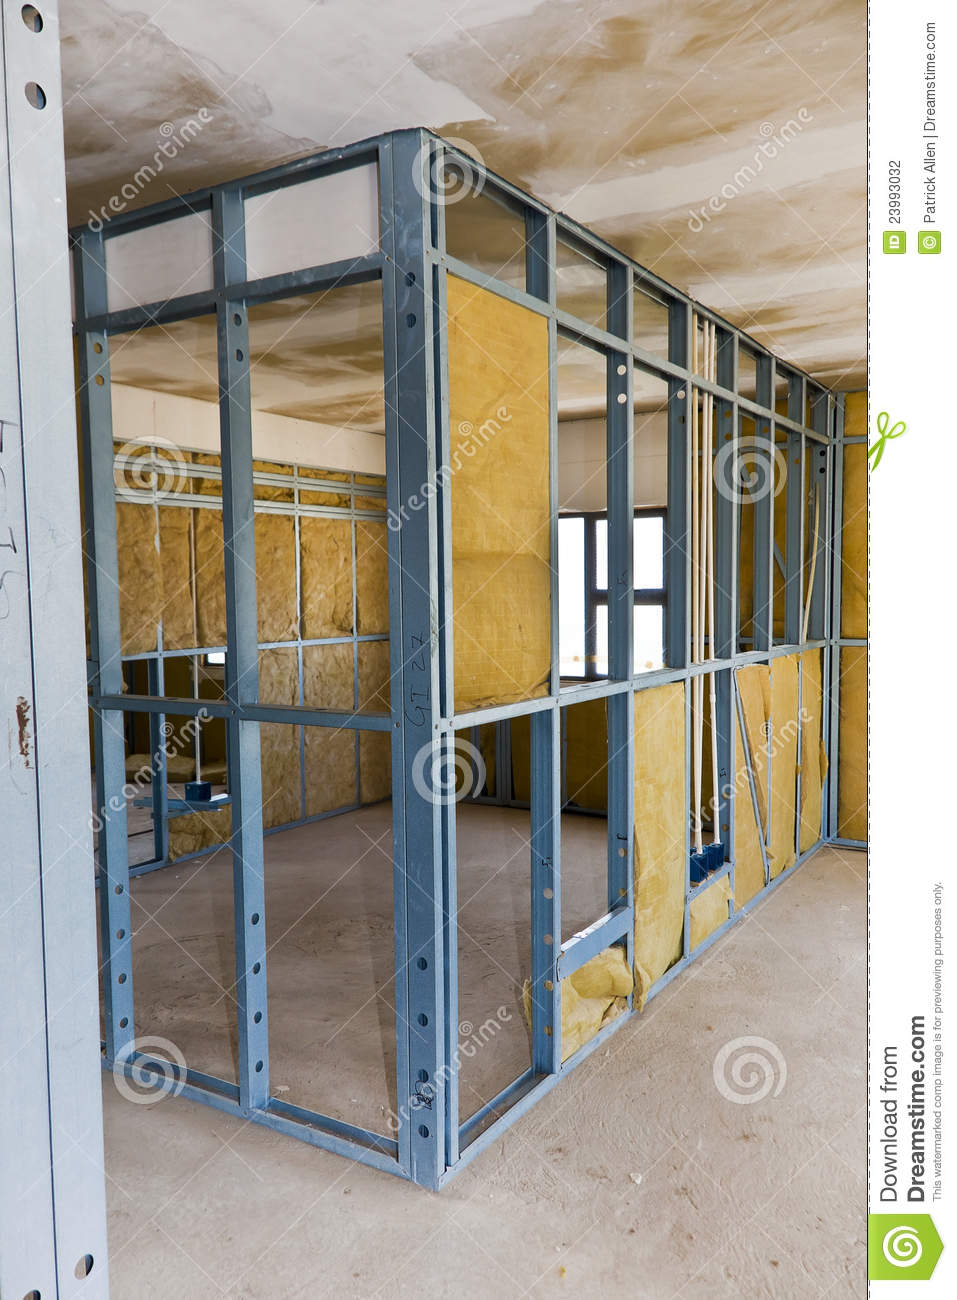 Construction Site Drywall Stock Photo Image Of Build